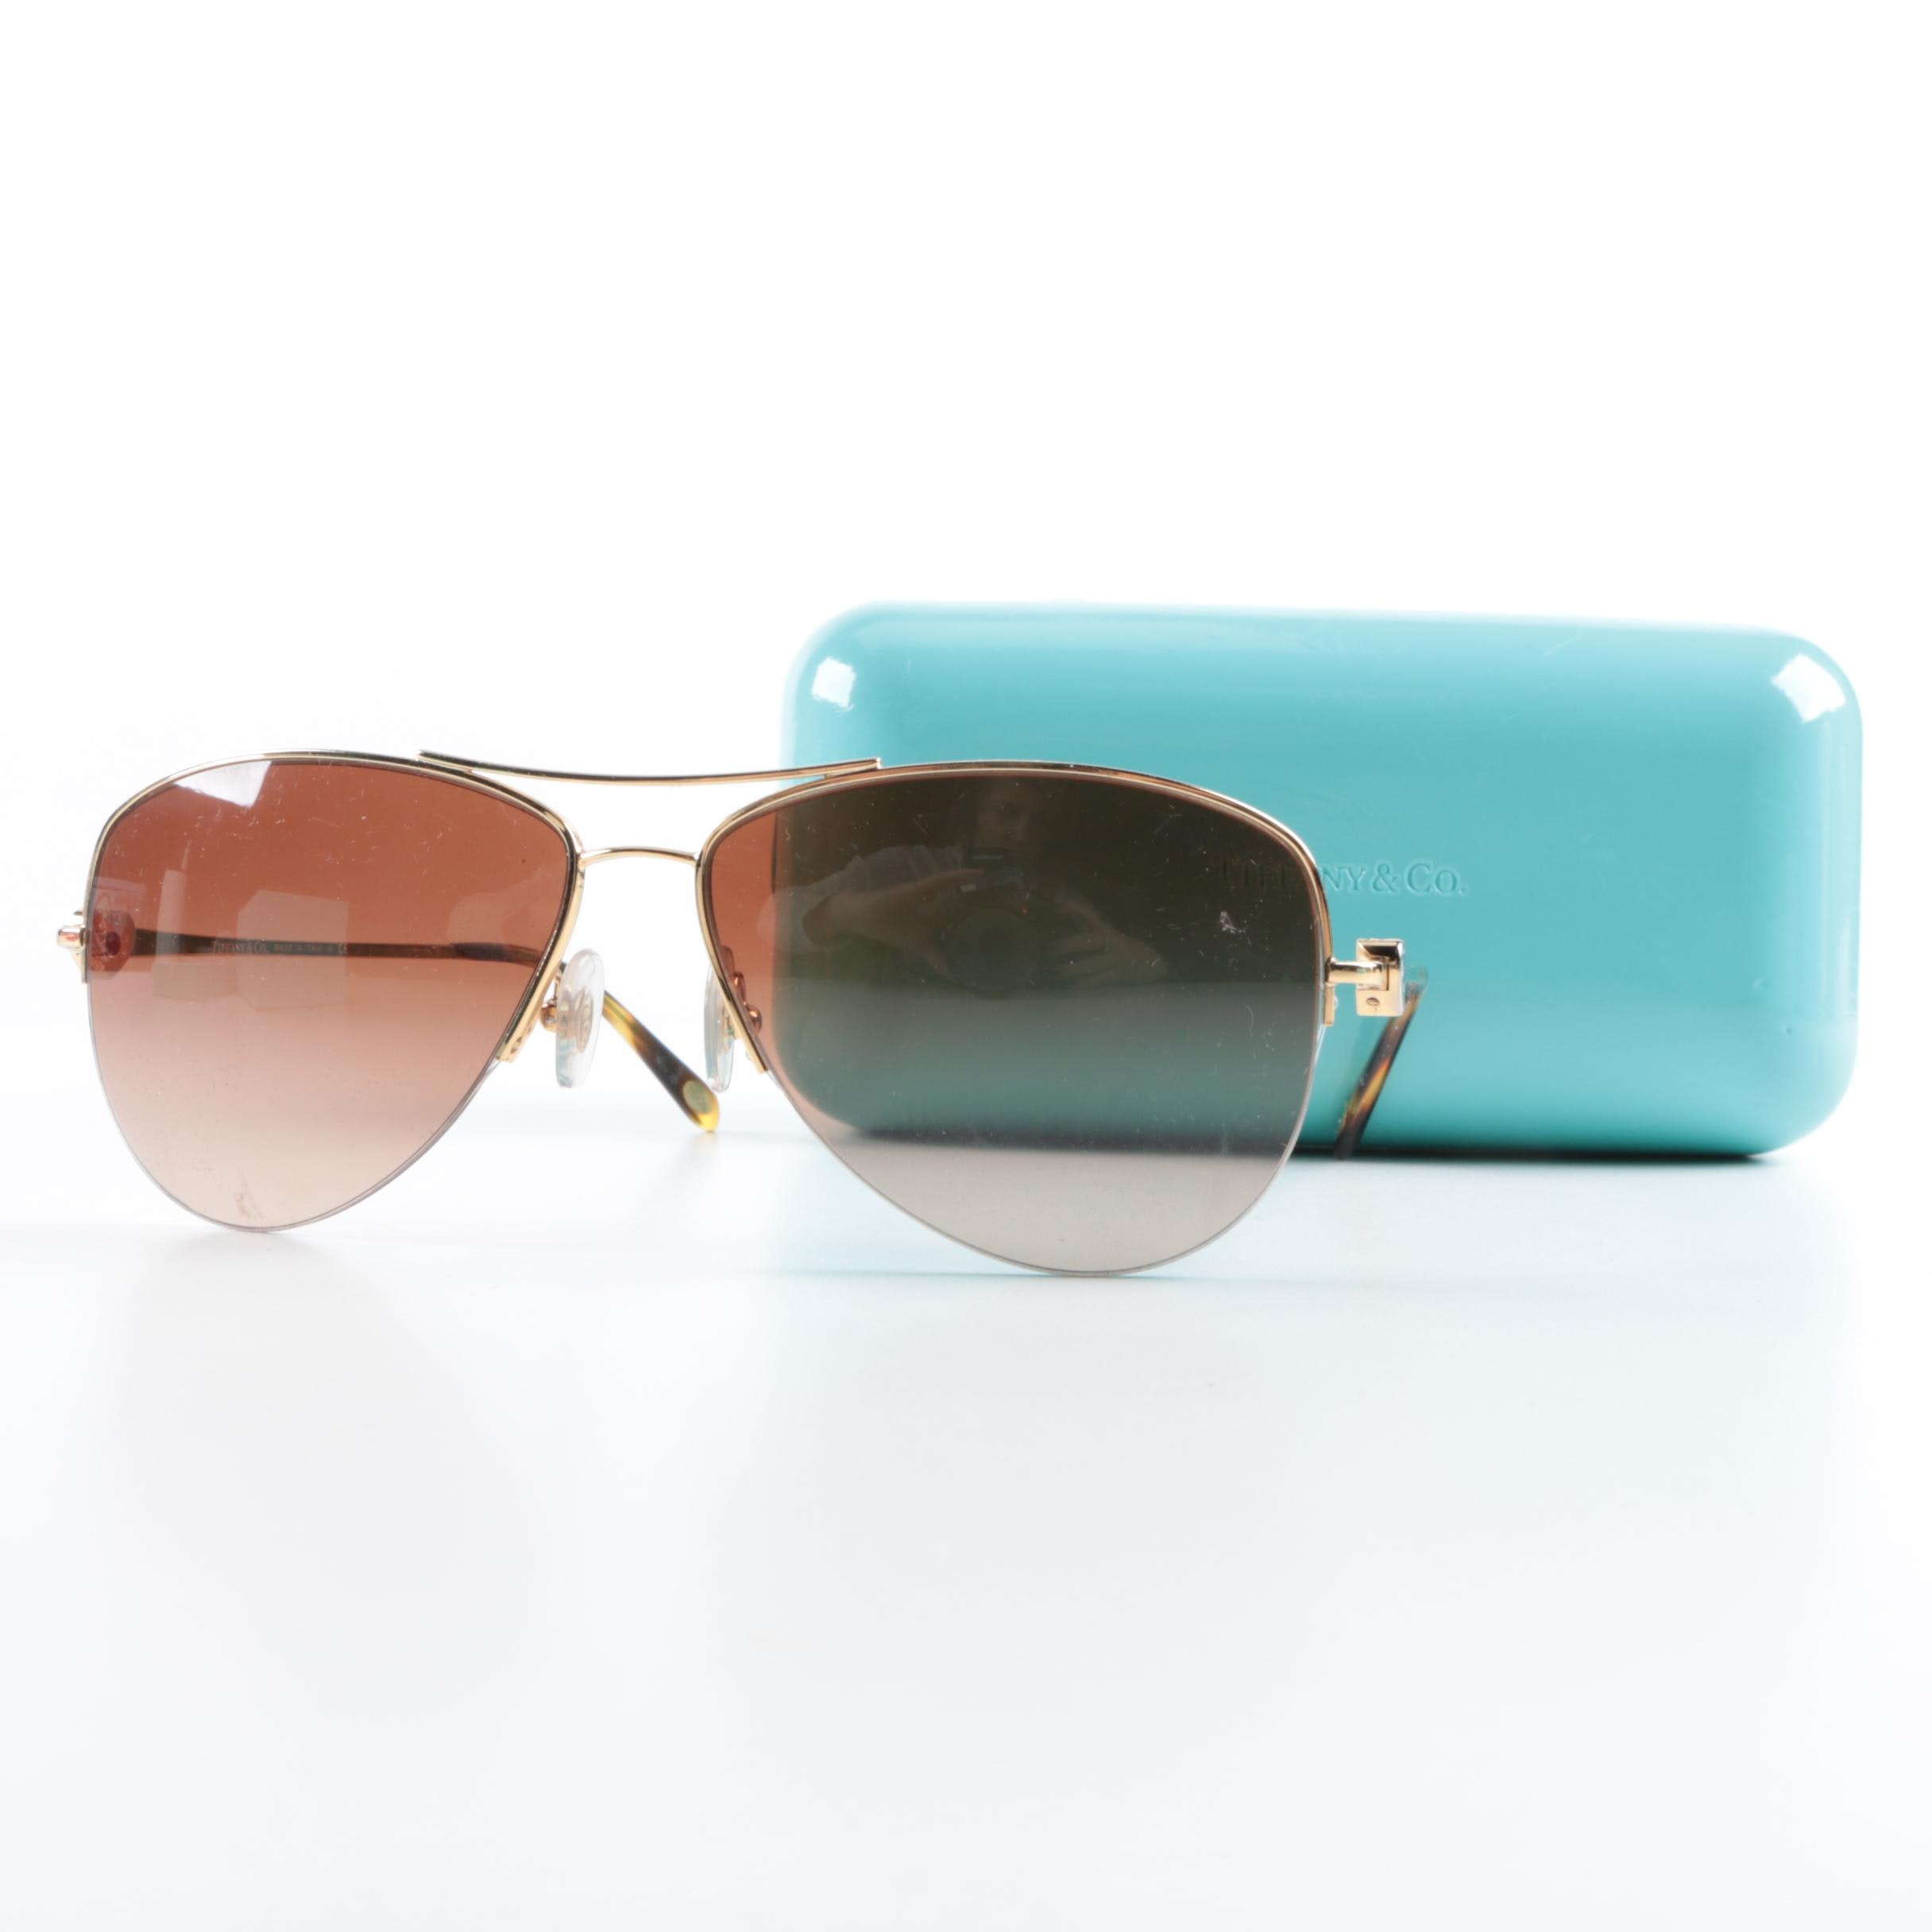 Tiffany & Co. Aviator Sunglasses